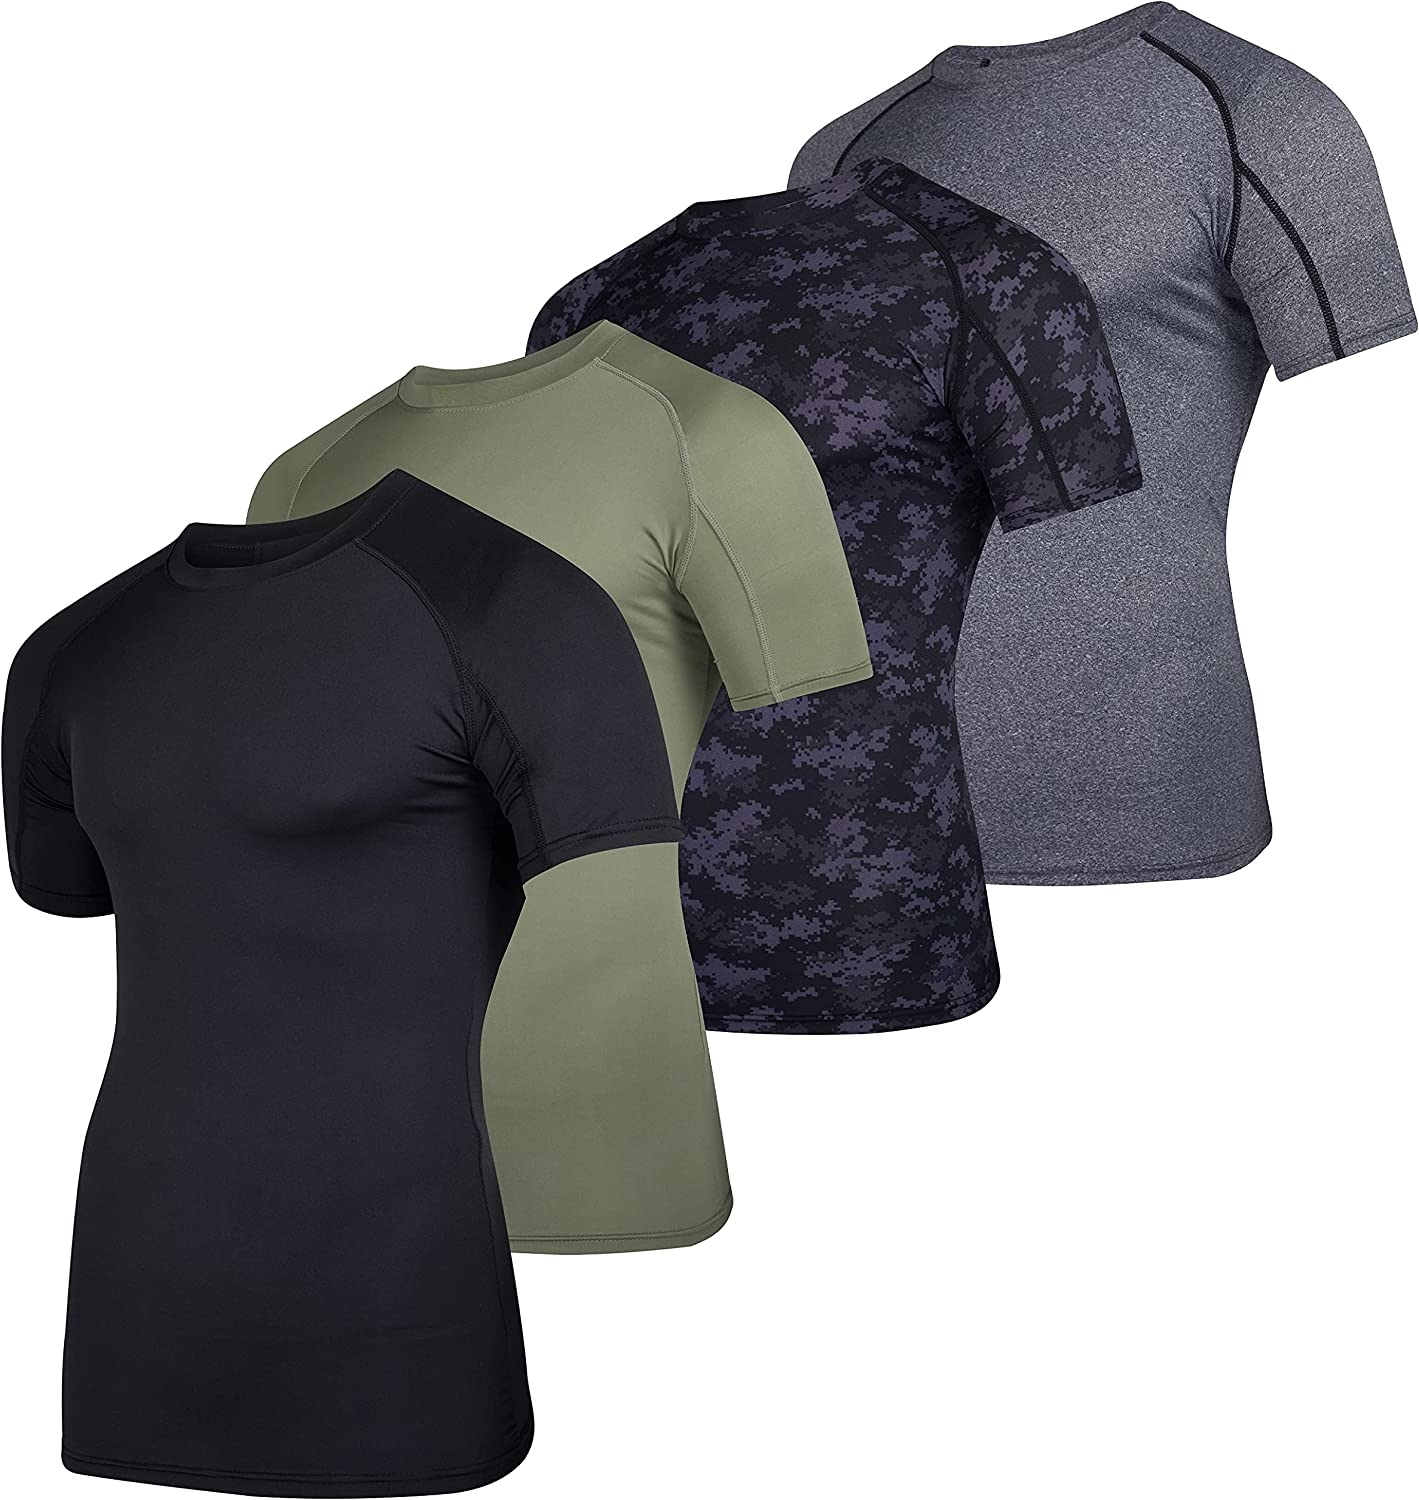 4 Pack: Men's Short Sleeve sale Base Safety and trust Undershi Layer Compression Shirt